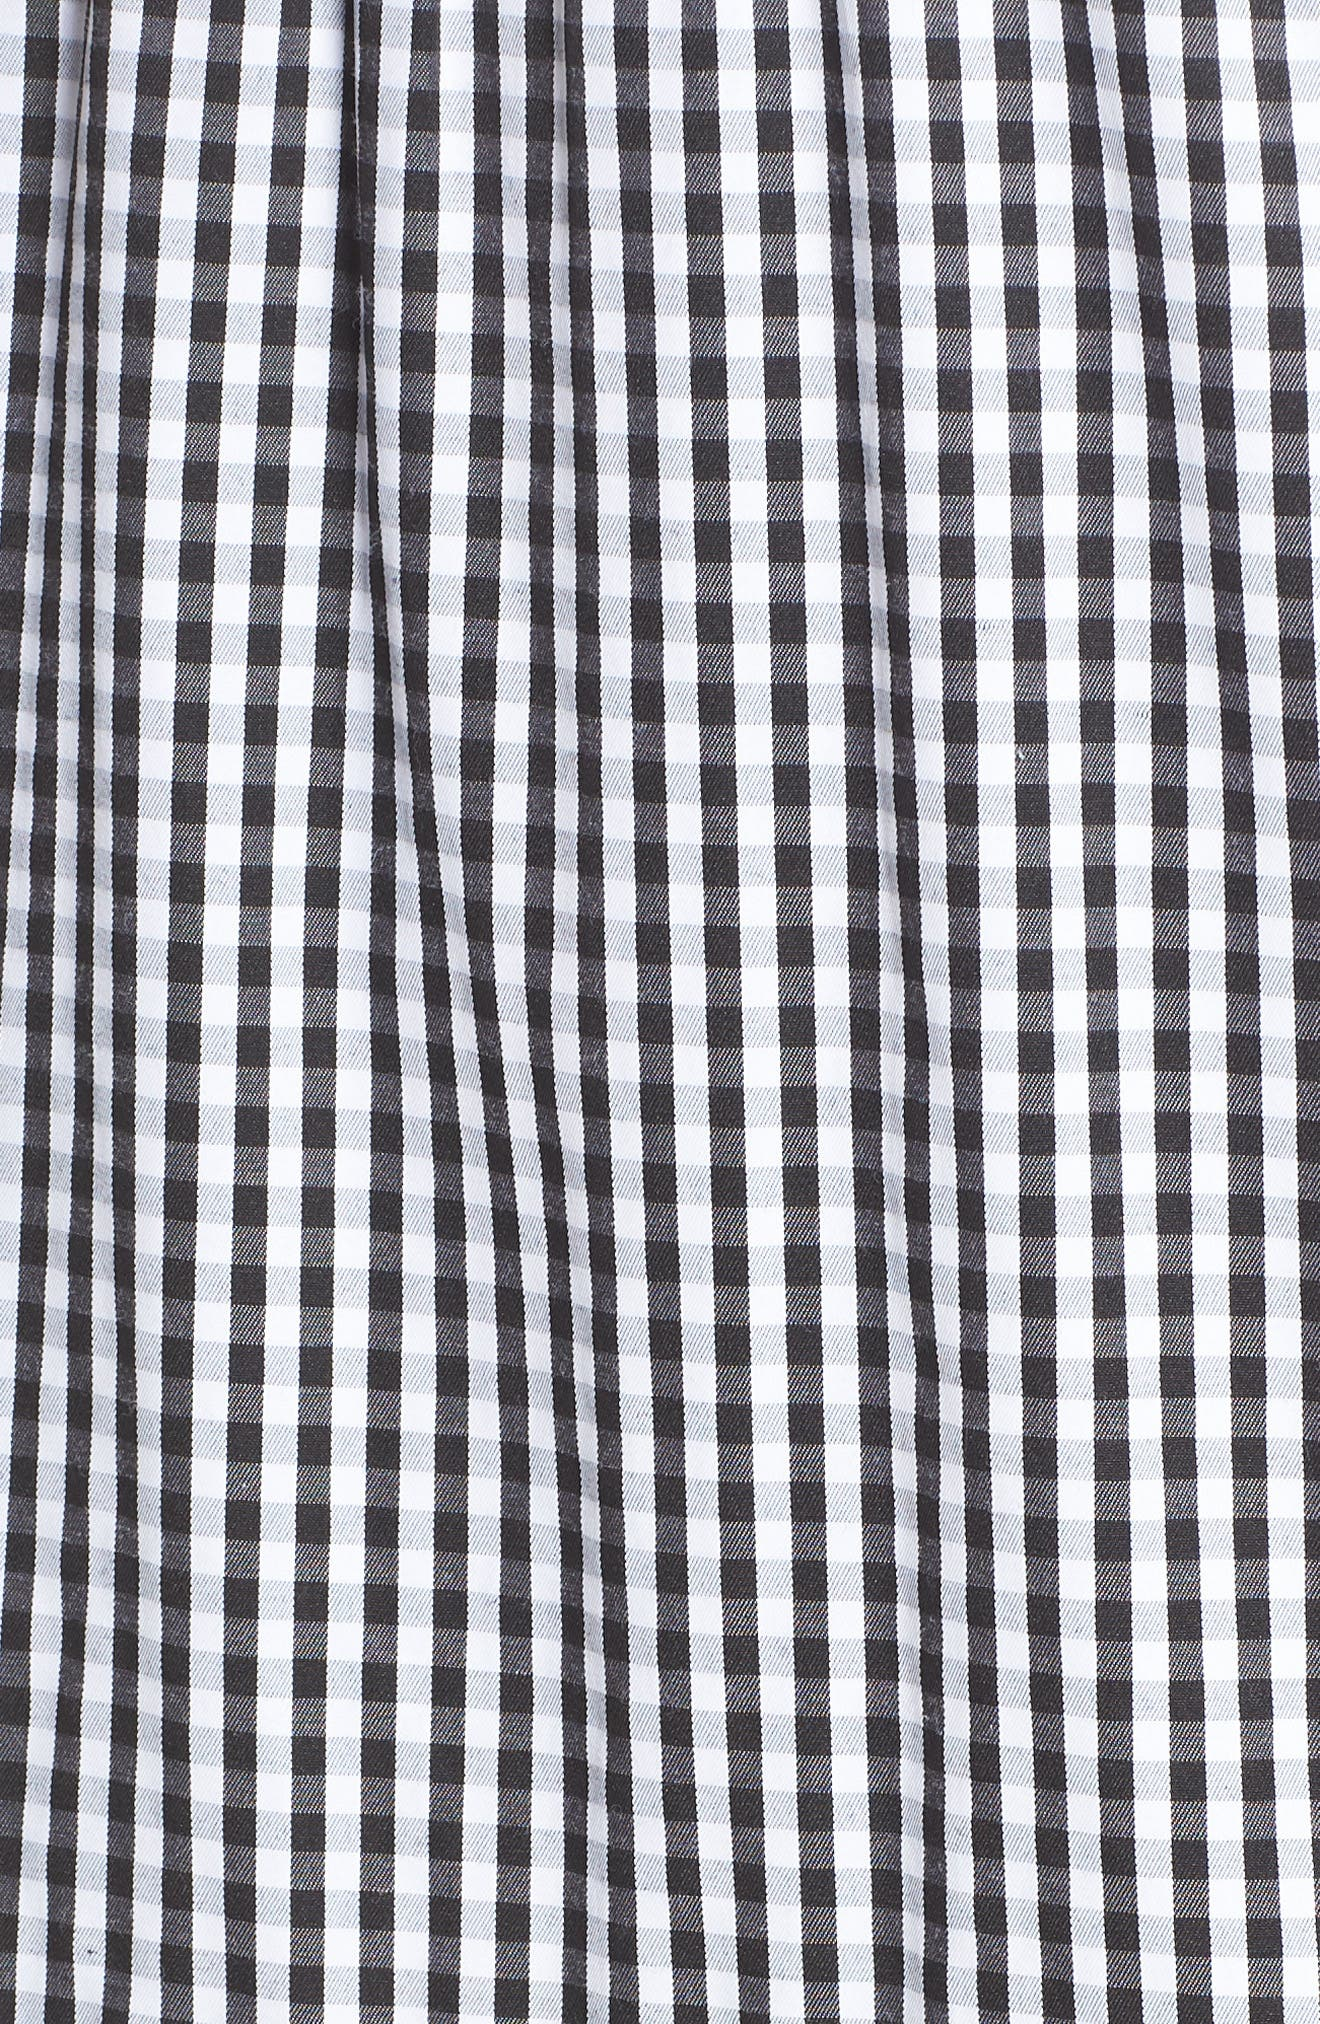 Gingham Check Maxi Dress,                             Alternate thumbnail 6, color,                             Black/ White